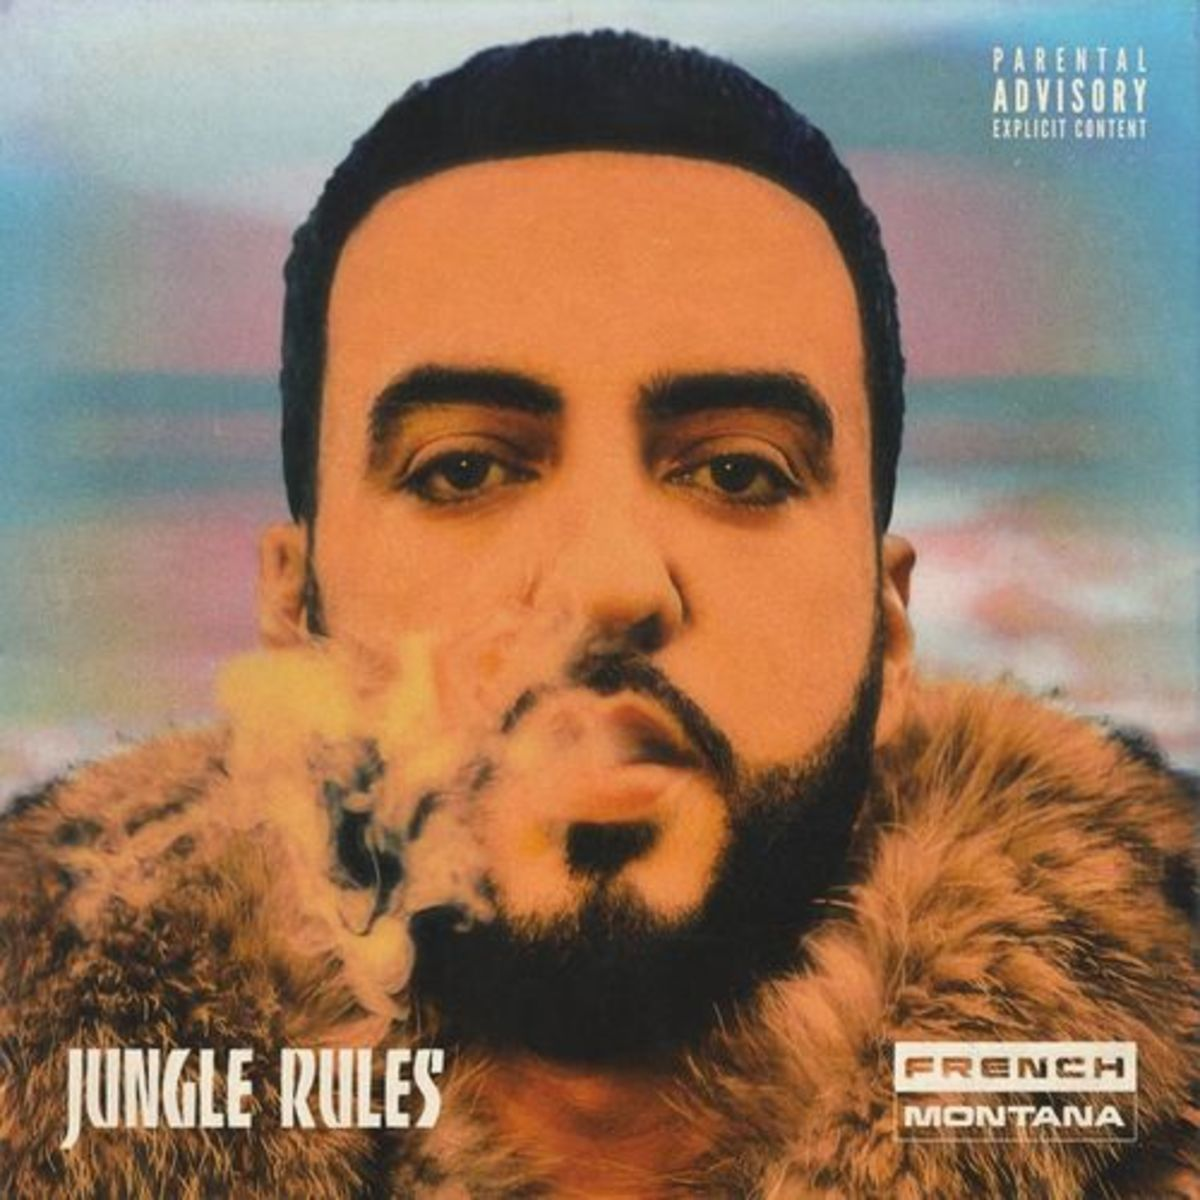 french-montana-jungle-rules.jpg